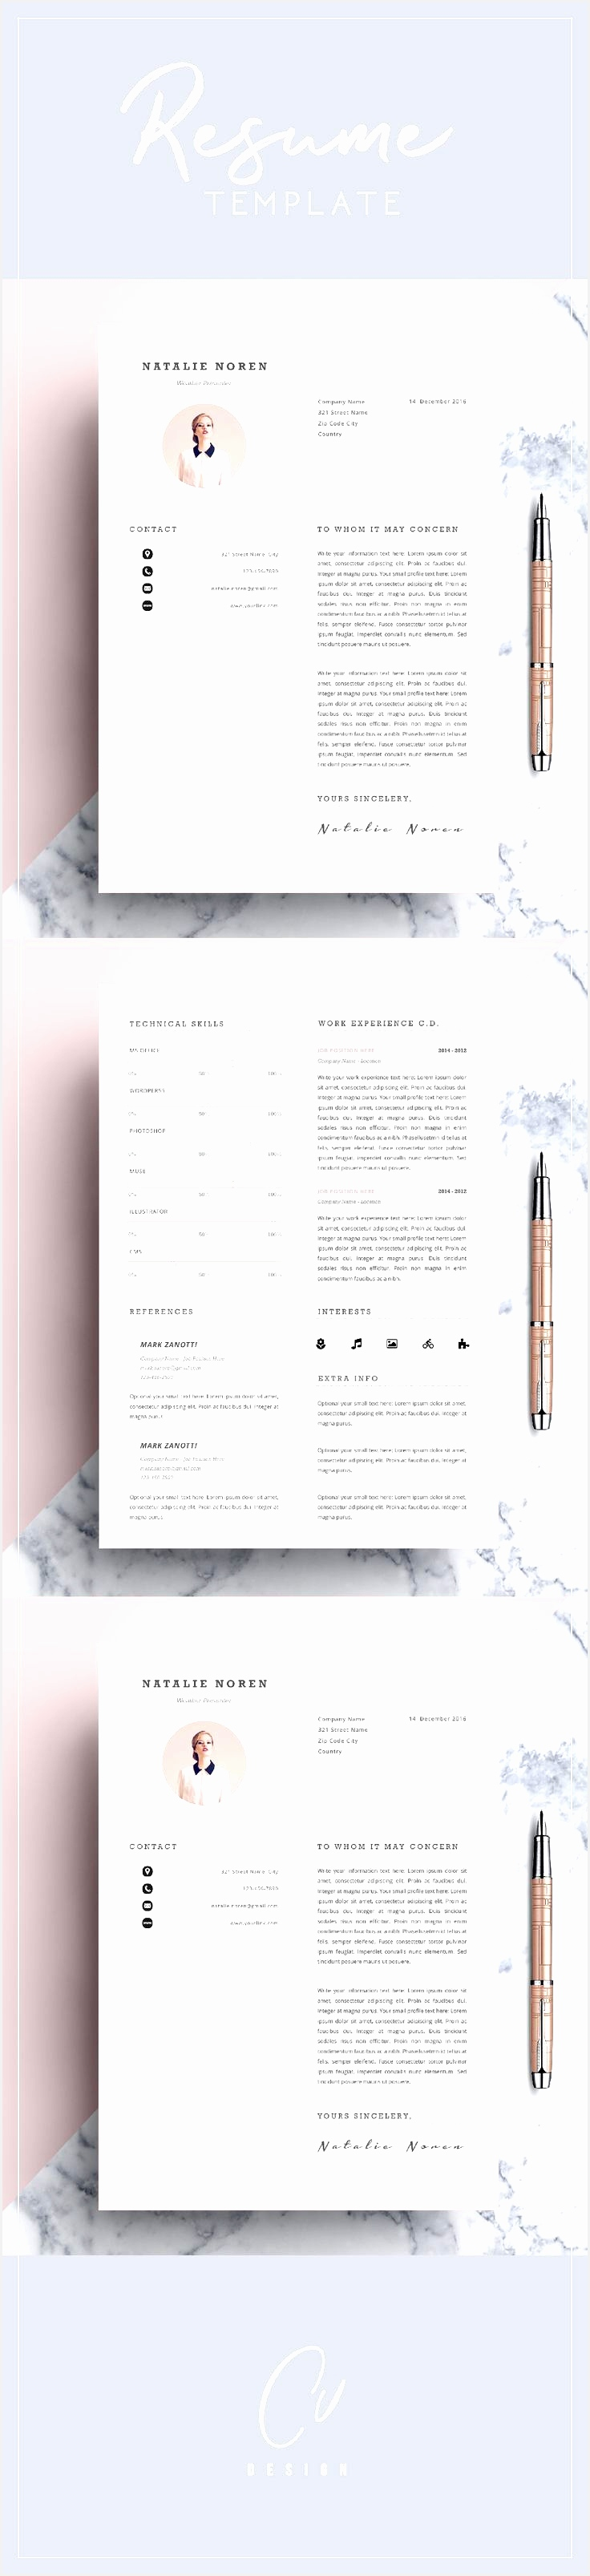 Professional Resume Template CV Template Editable in MS Word and Pages Instant Digital Download Size A4 and US Letter3213736